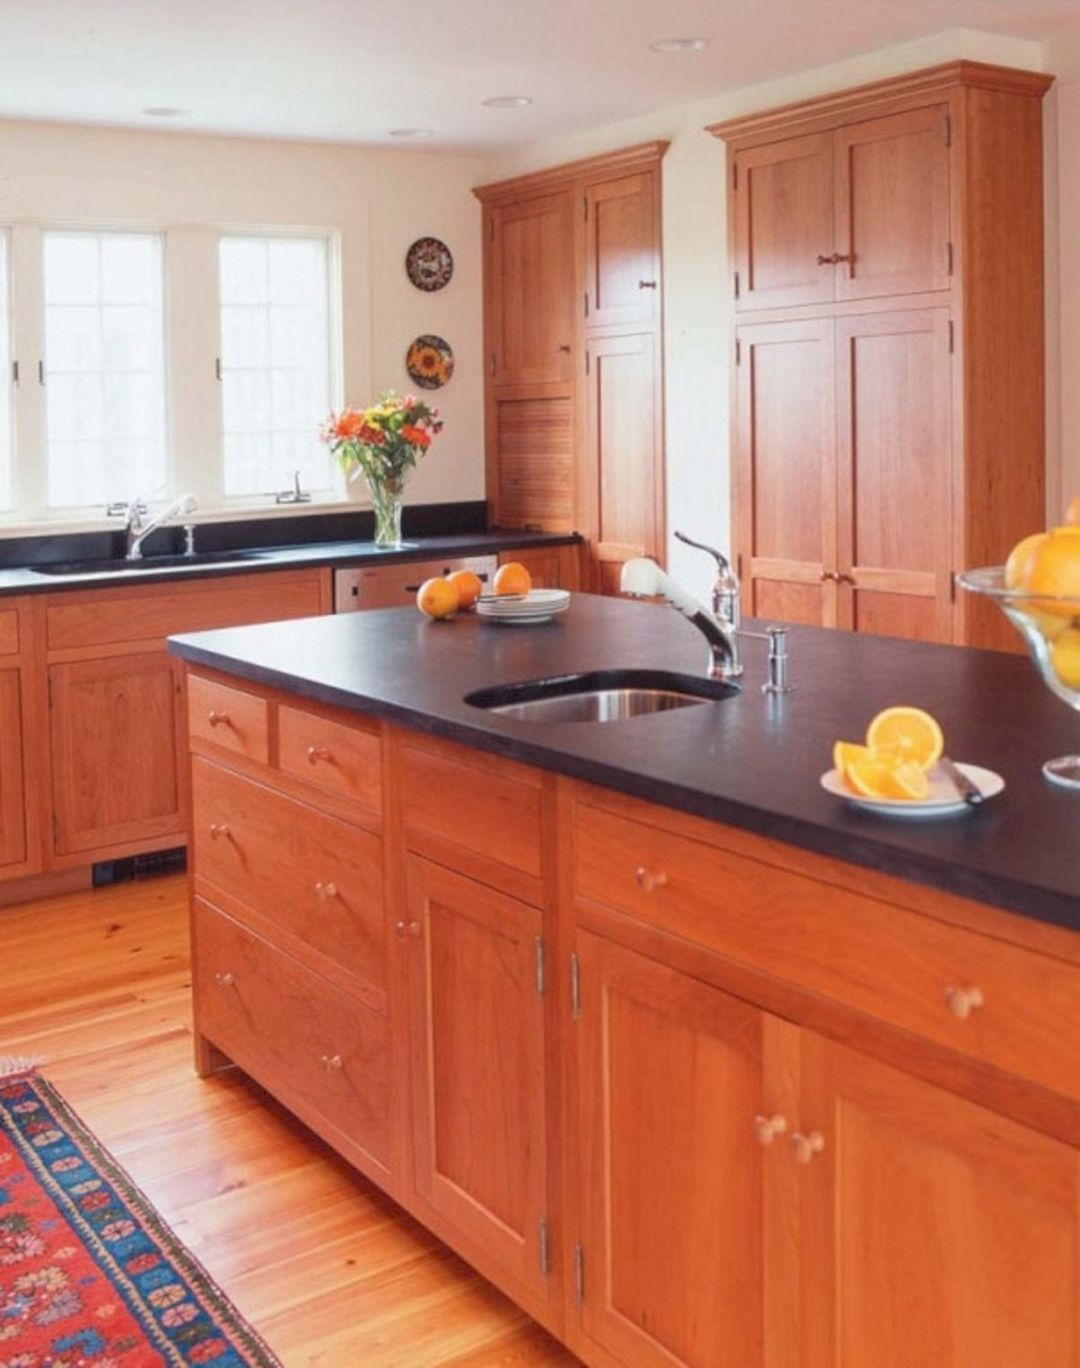 Cherry Kitchen Cabinets With Wood Floors Cherry Wood Kitchen Cabinets Wood Kitchen Cabinets Cherry Cabinets Kitchen